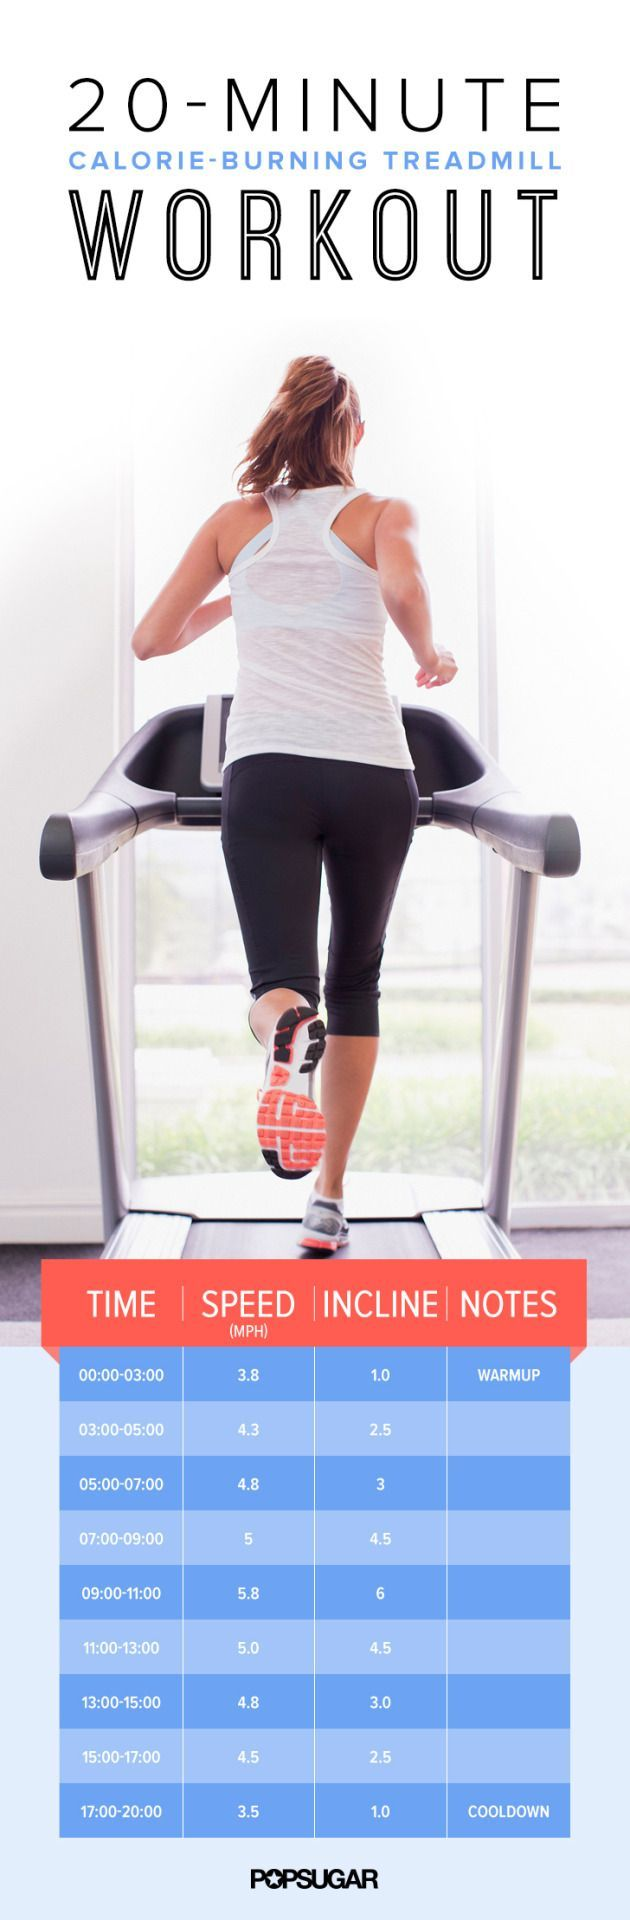 Make the most out of your time on the treadmill with this 20-minute ultimate calorie burning workout. So many calories in so little time!